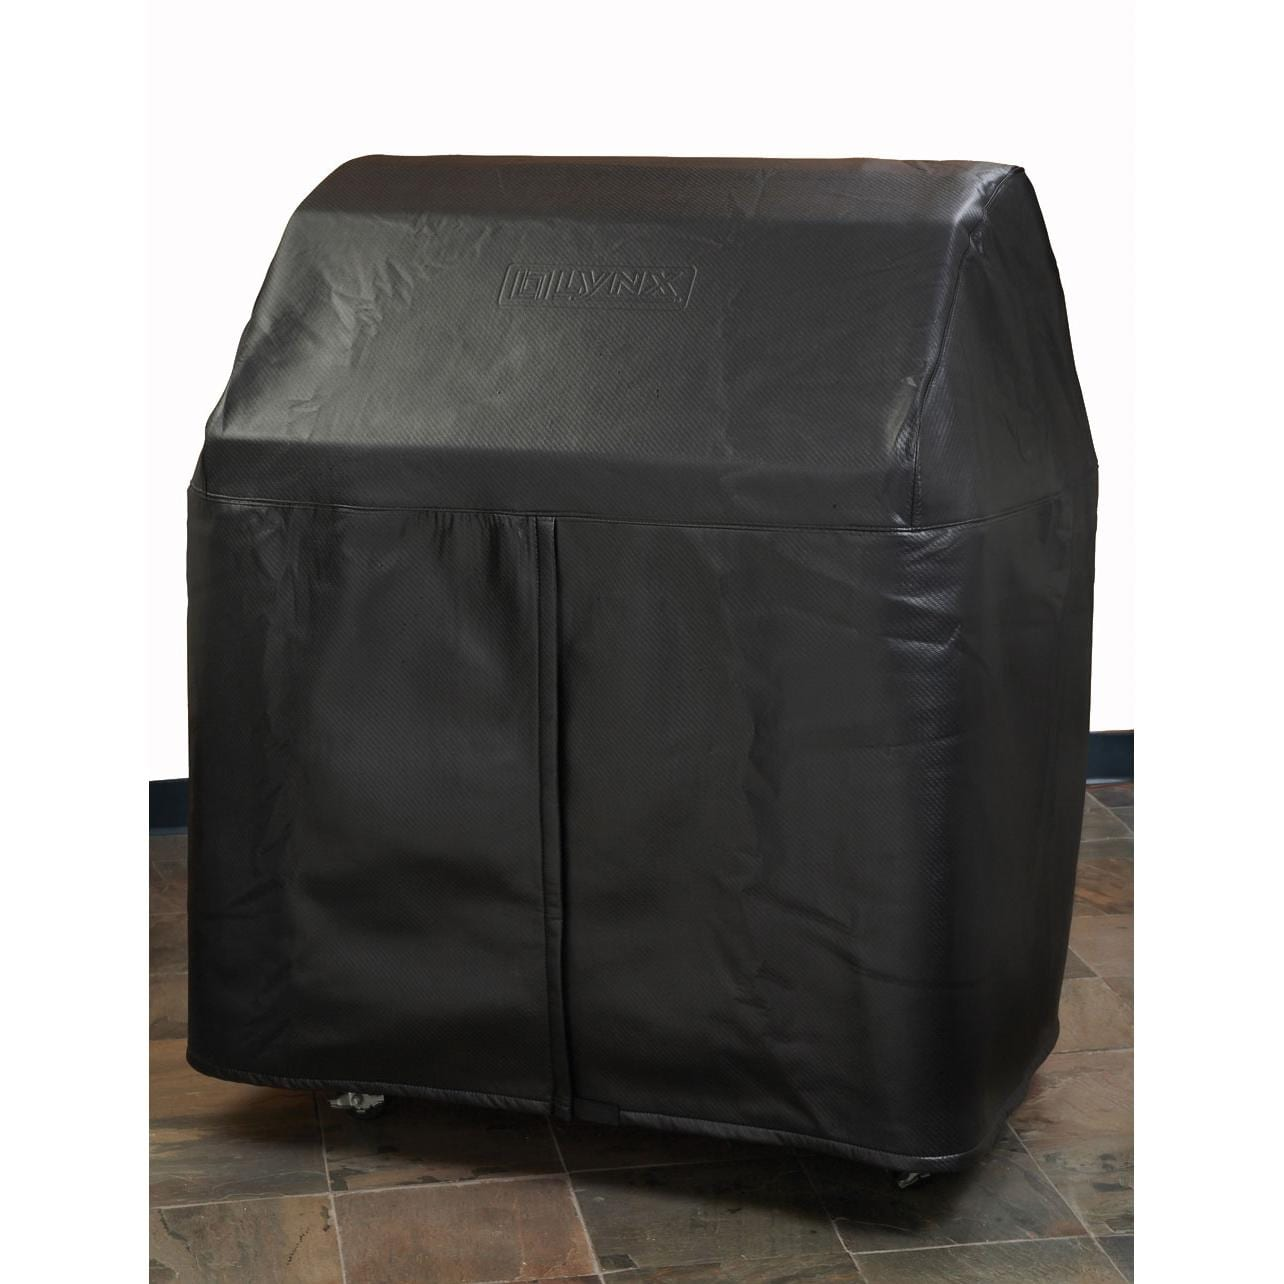 Lynx 36-Inch Freestanding Professional Gas Grill Cover